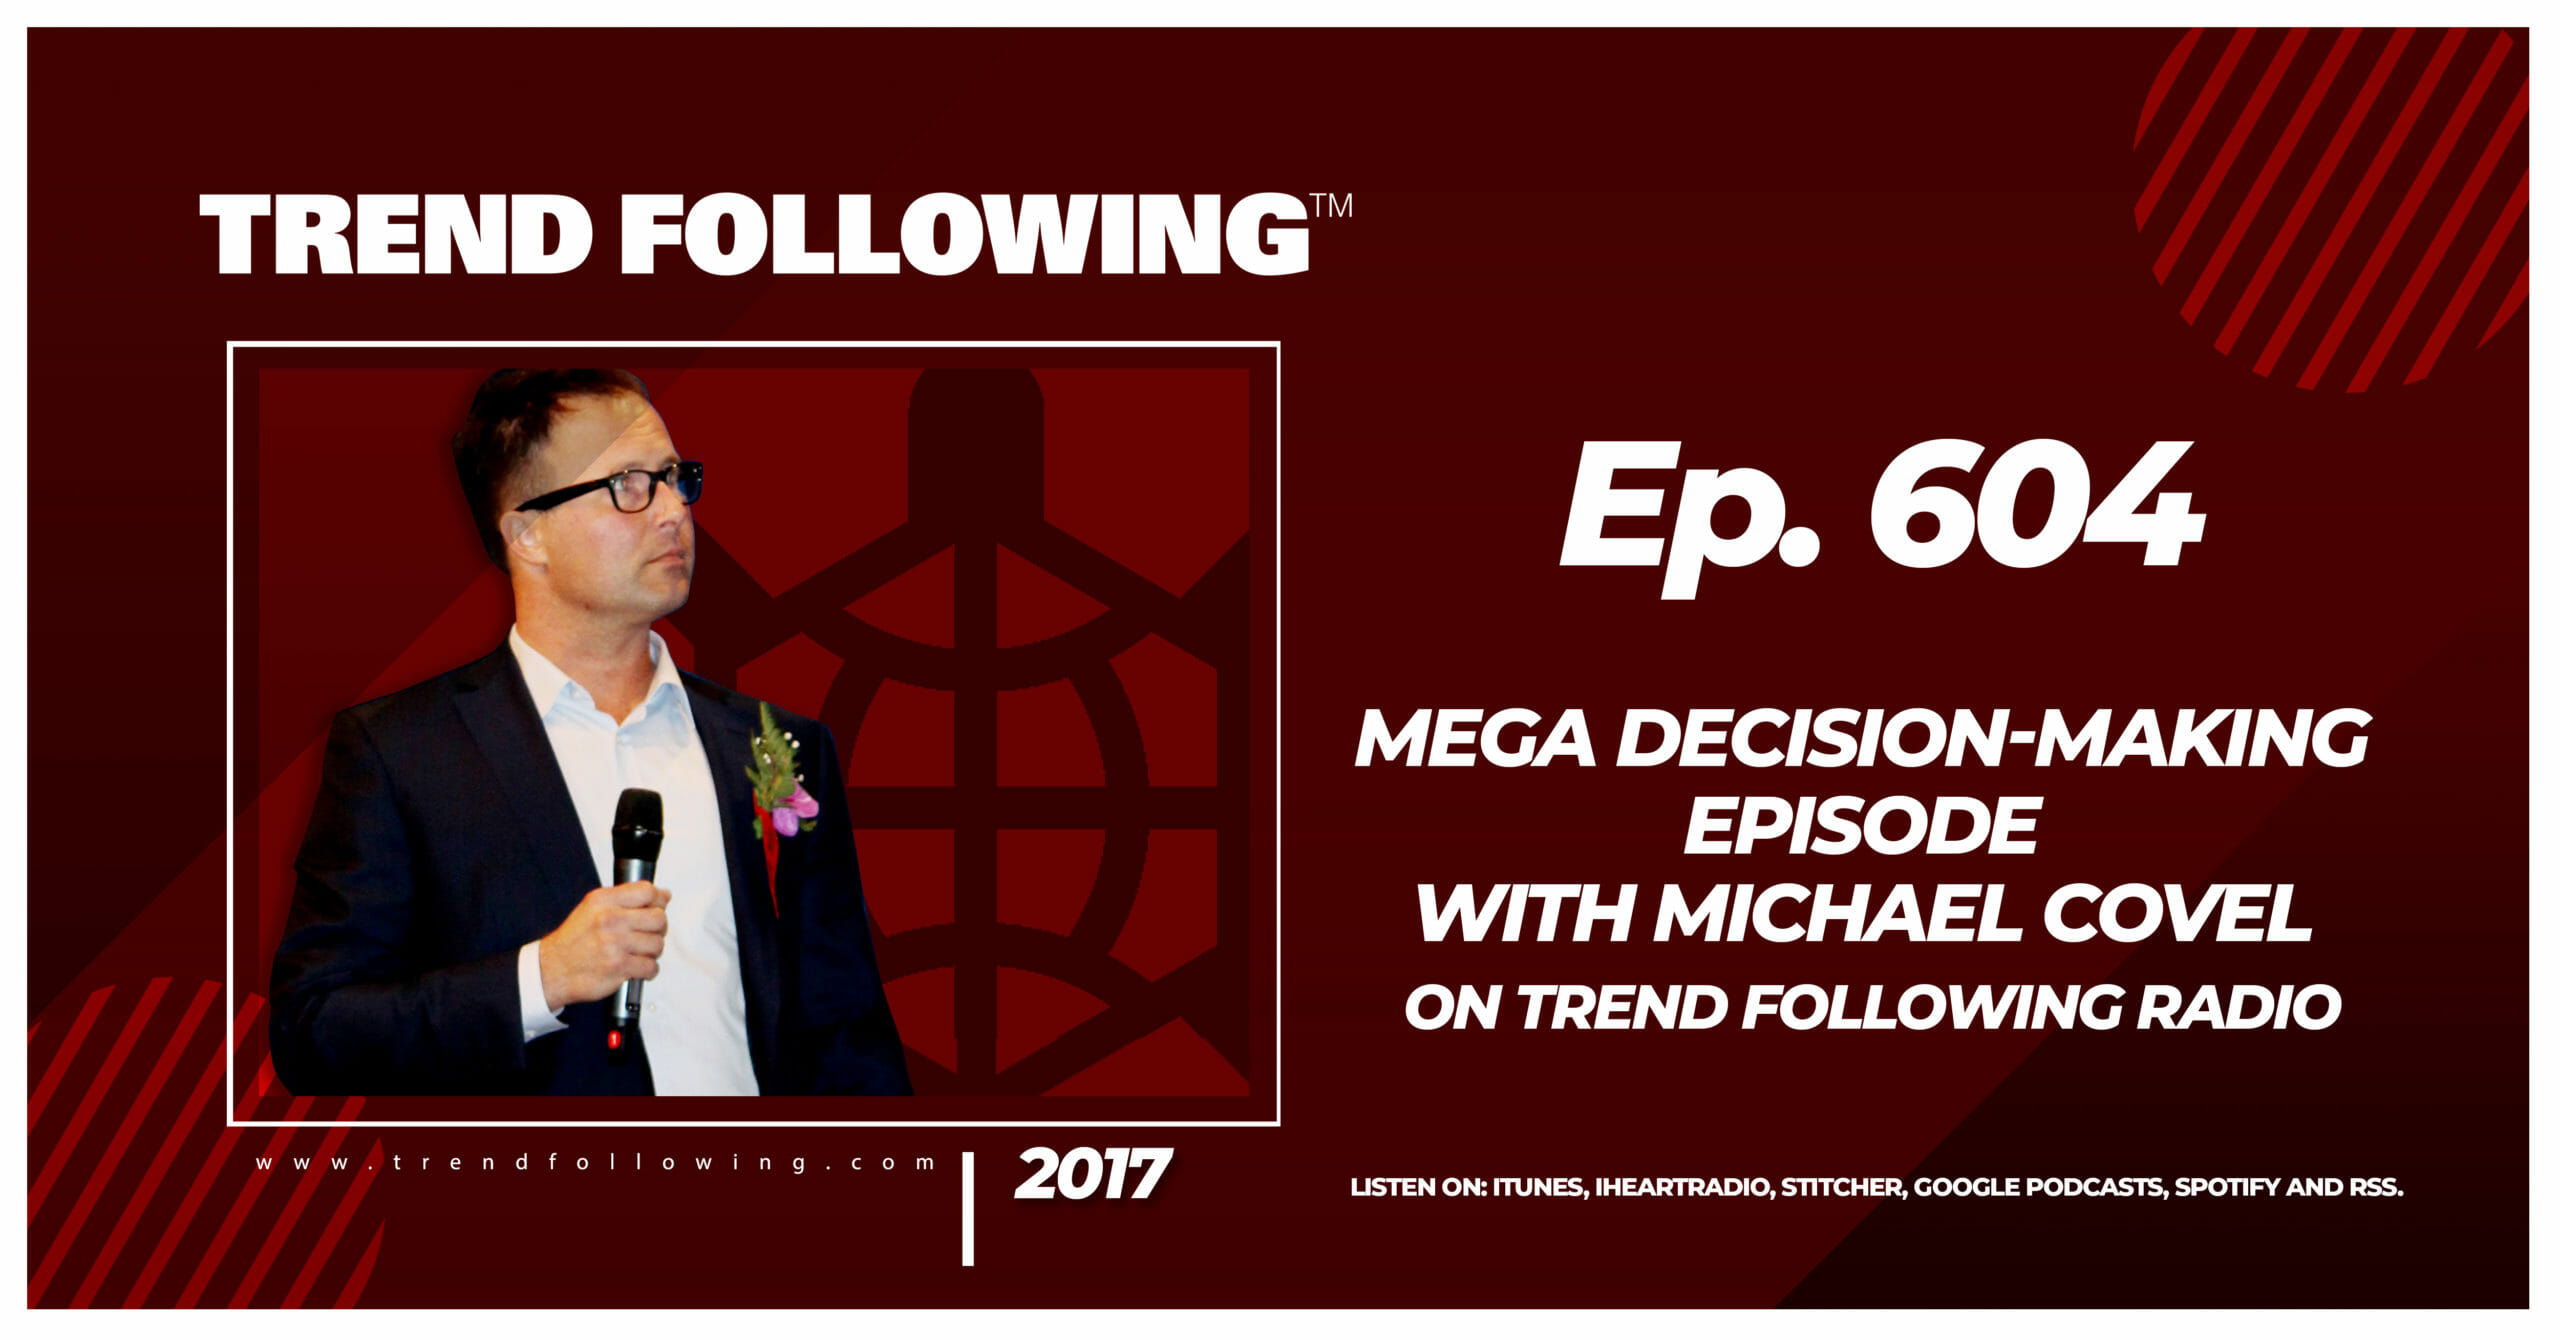 Mega Decision-Making Episode with Michael Covel on Trend Following Radio